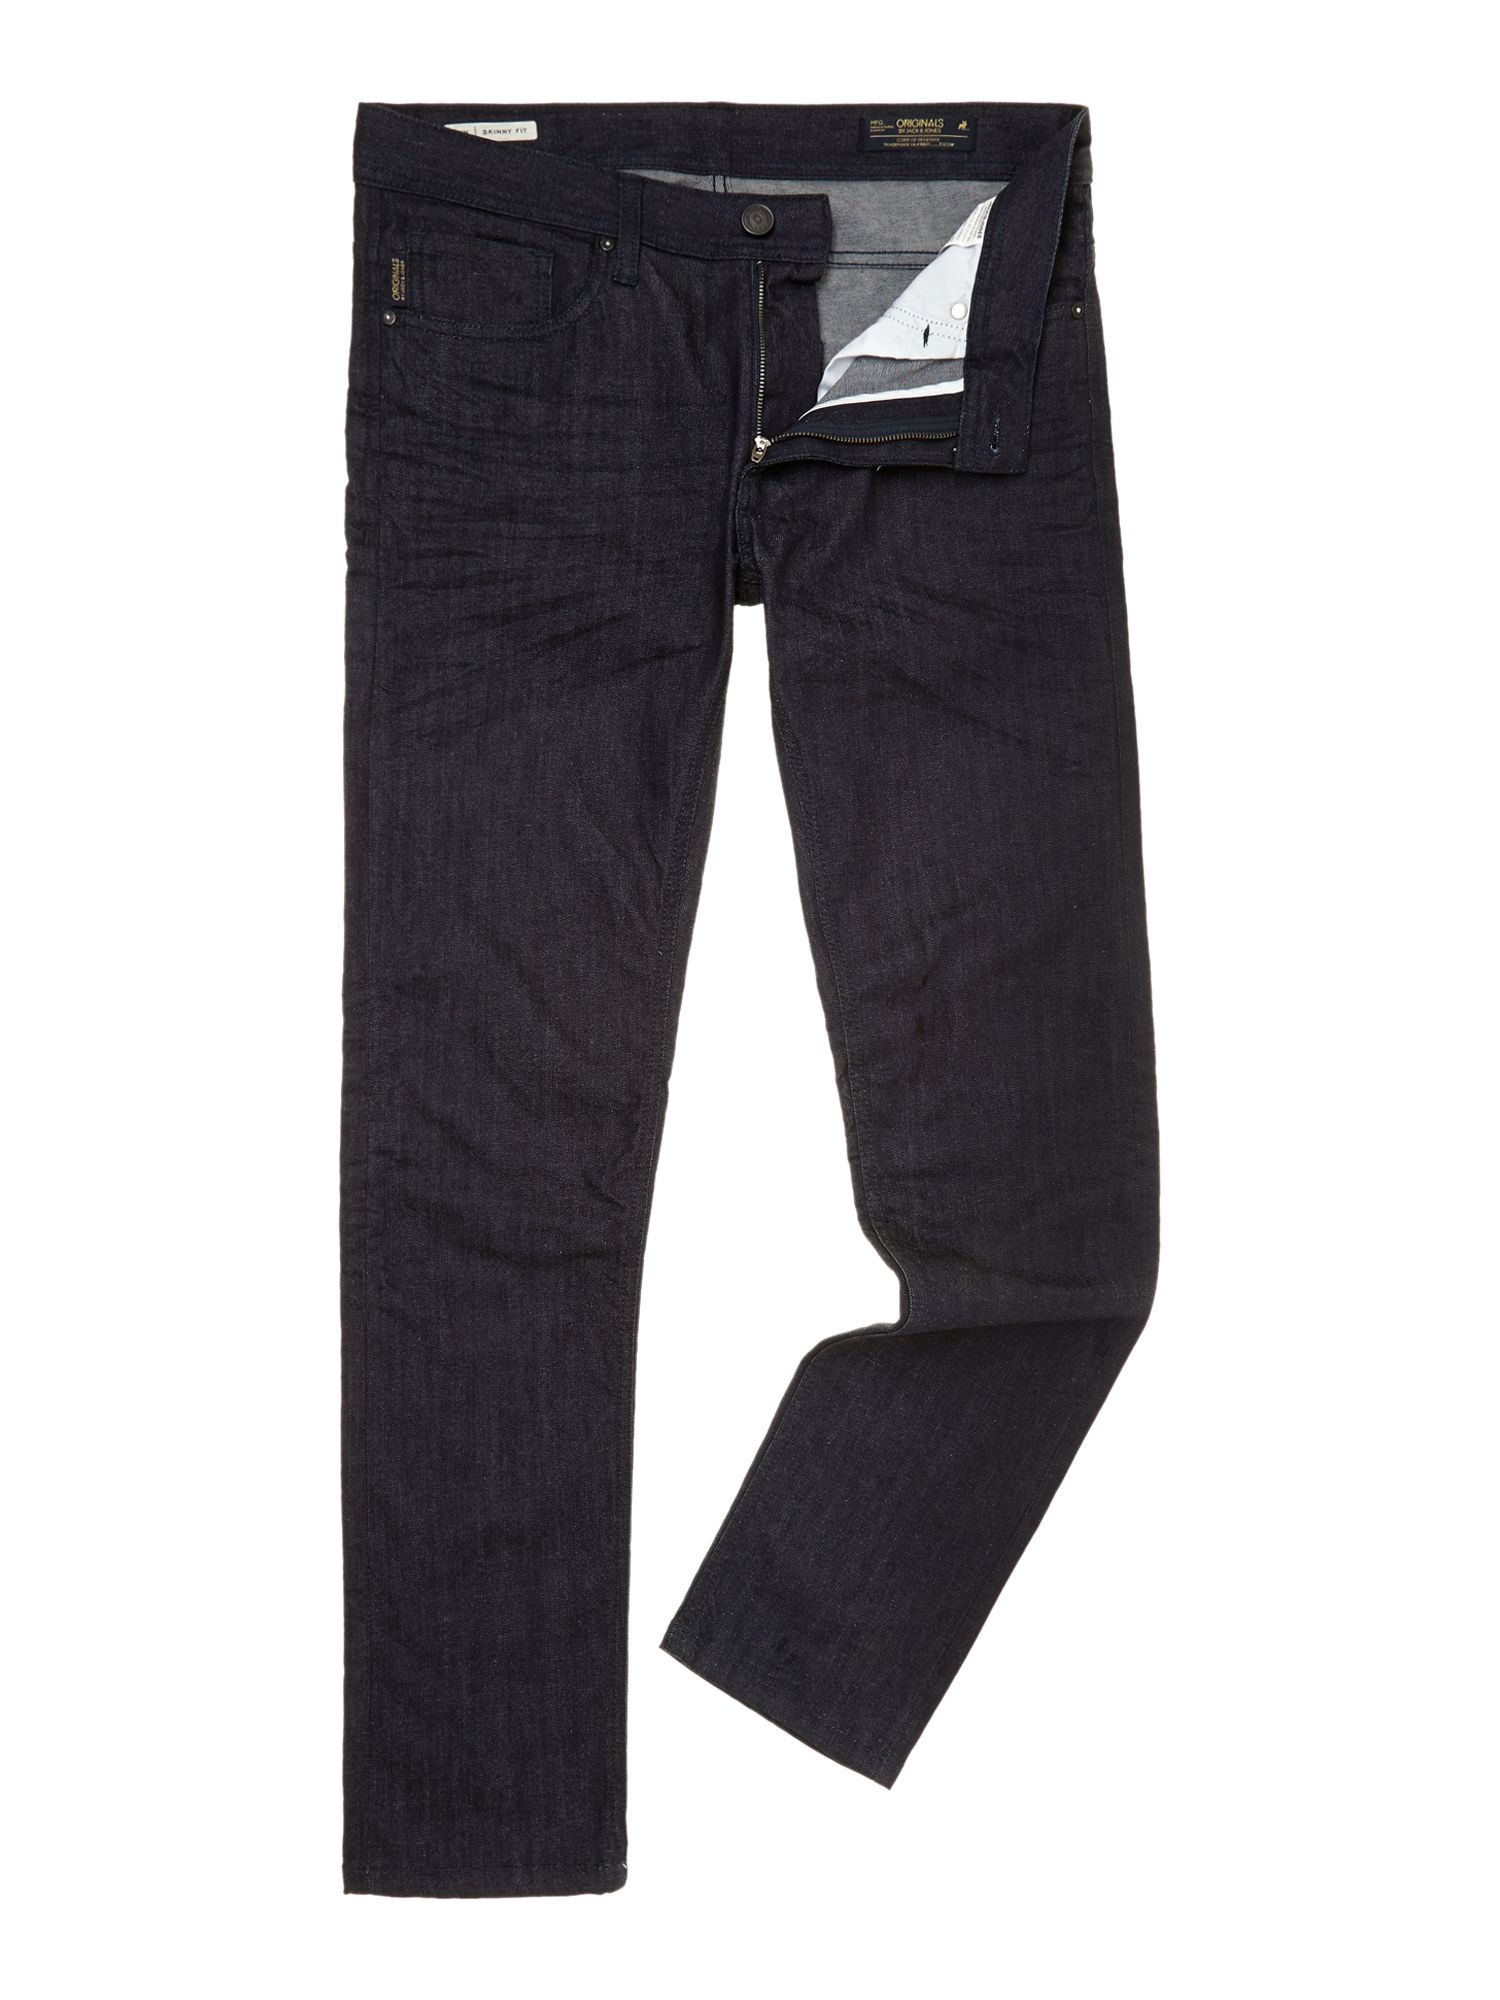 Ben Original Anti-fit 924 Skinny Jean